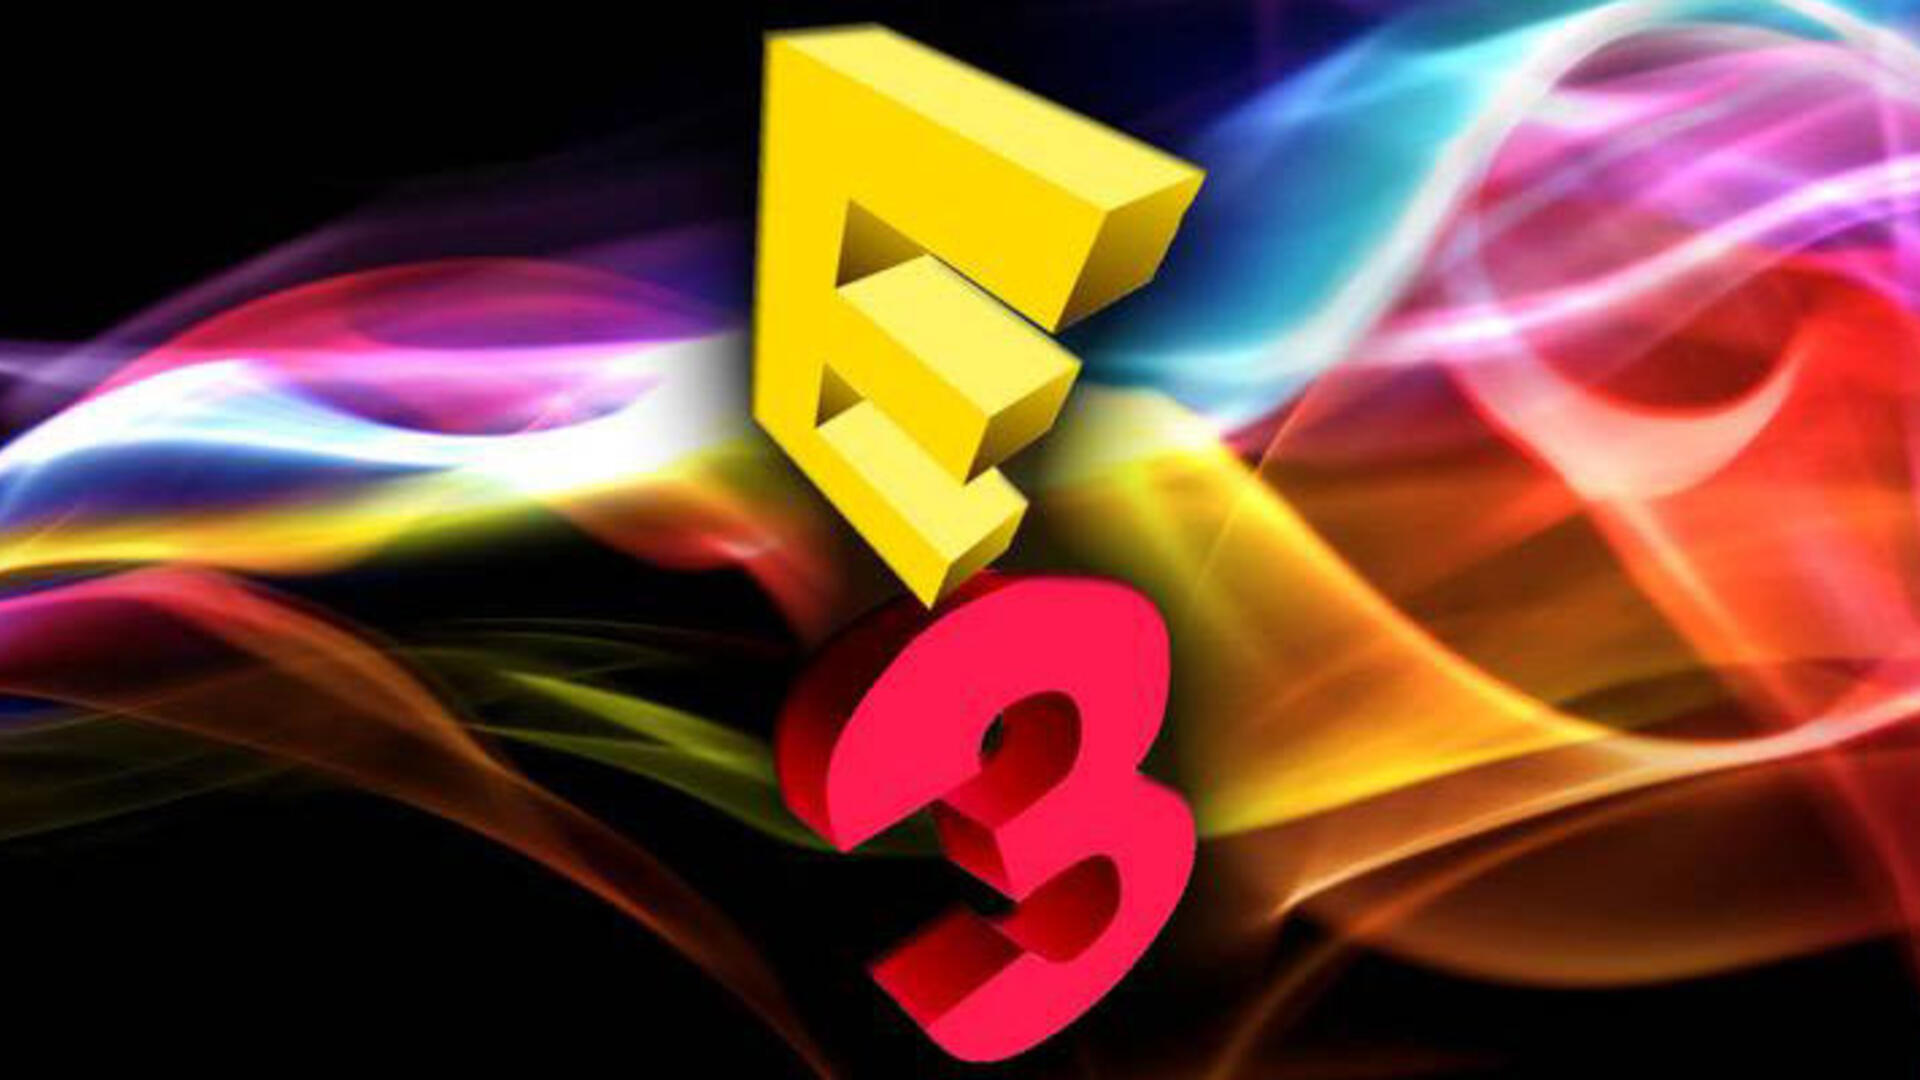 E3 Opens To The Public To Compete With PAX and Gamescom